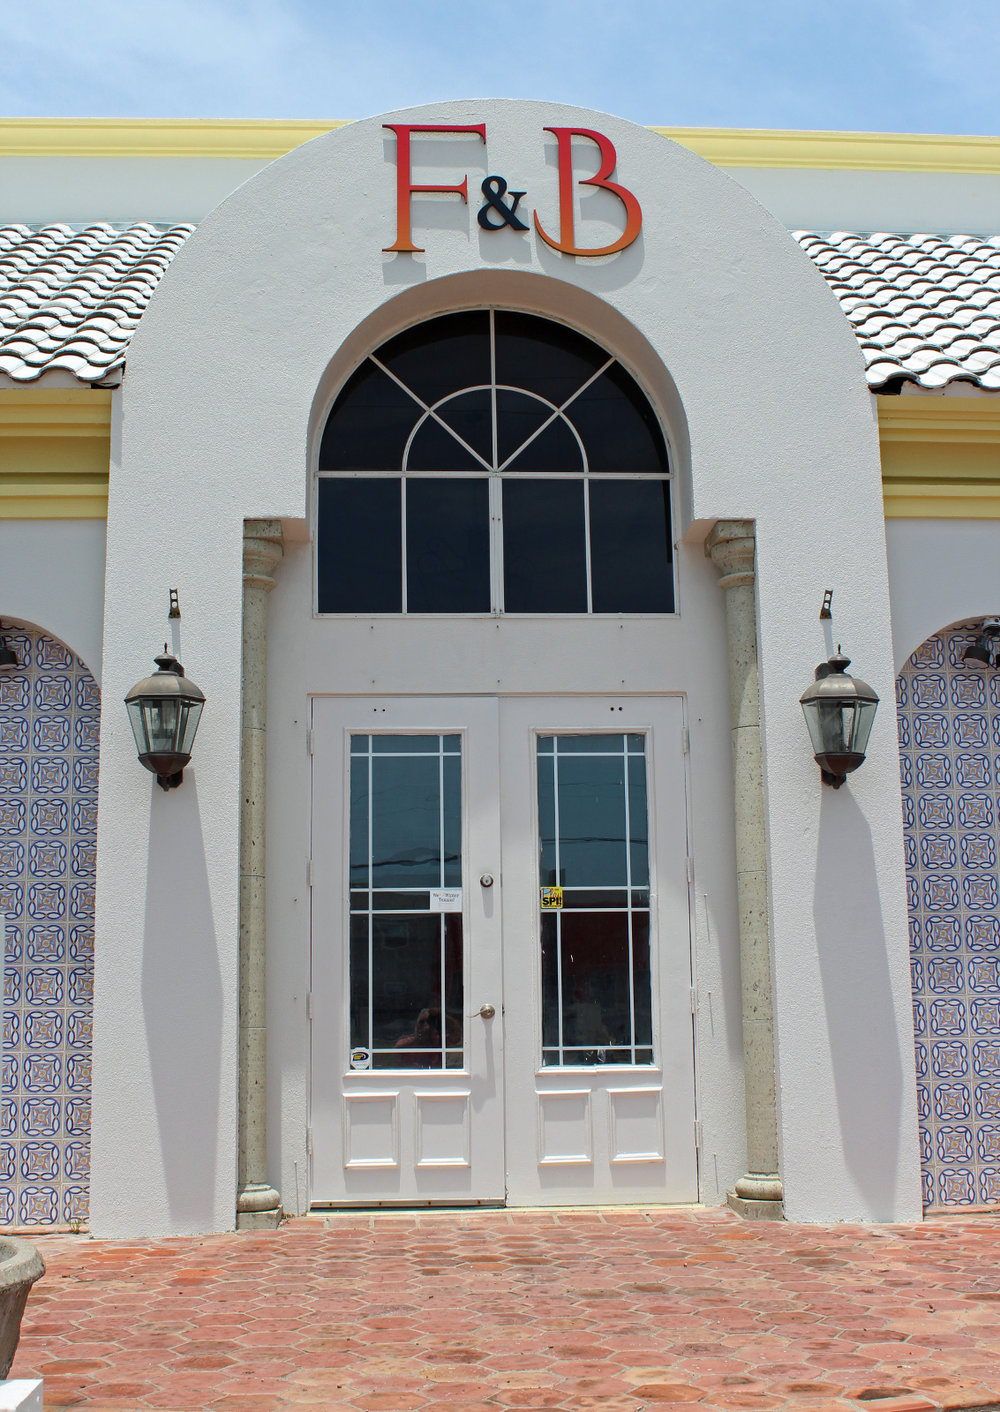 The façade of the restaurant features its straightforward name. F&B stands for Food and Beverage. (VBR)